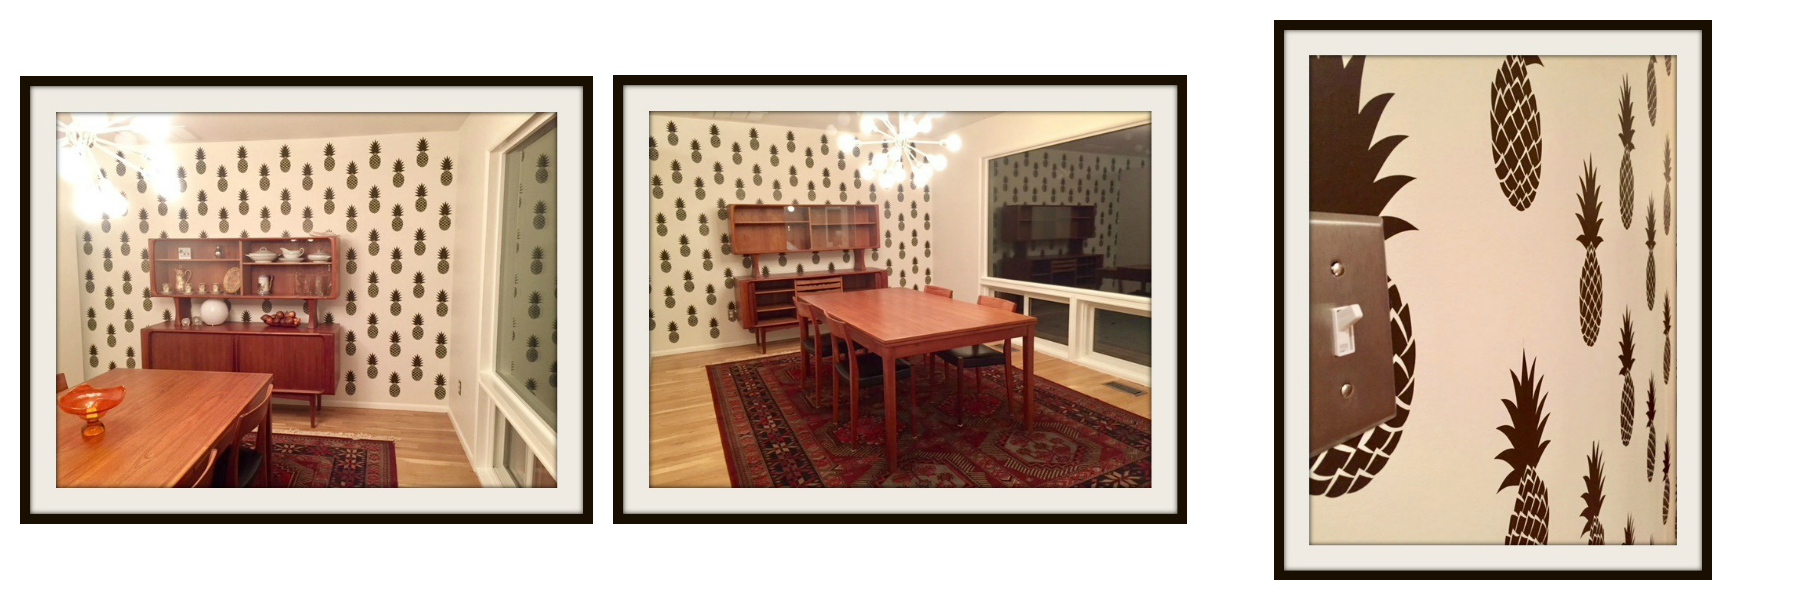 We are in love! This dining room makeover is spot on period correct and features our pineapple wall decals in dark brown. A huge thank you to Mary and Justin K. for sharing photos of their completed project.